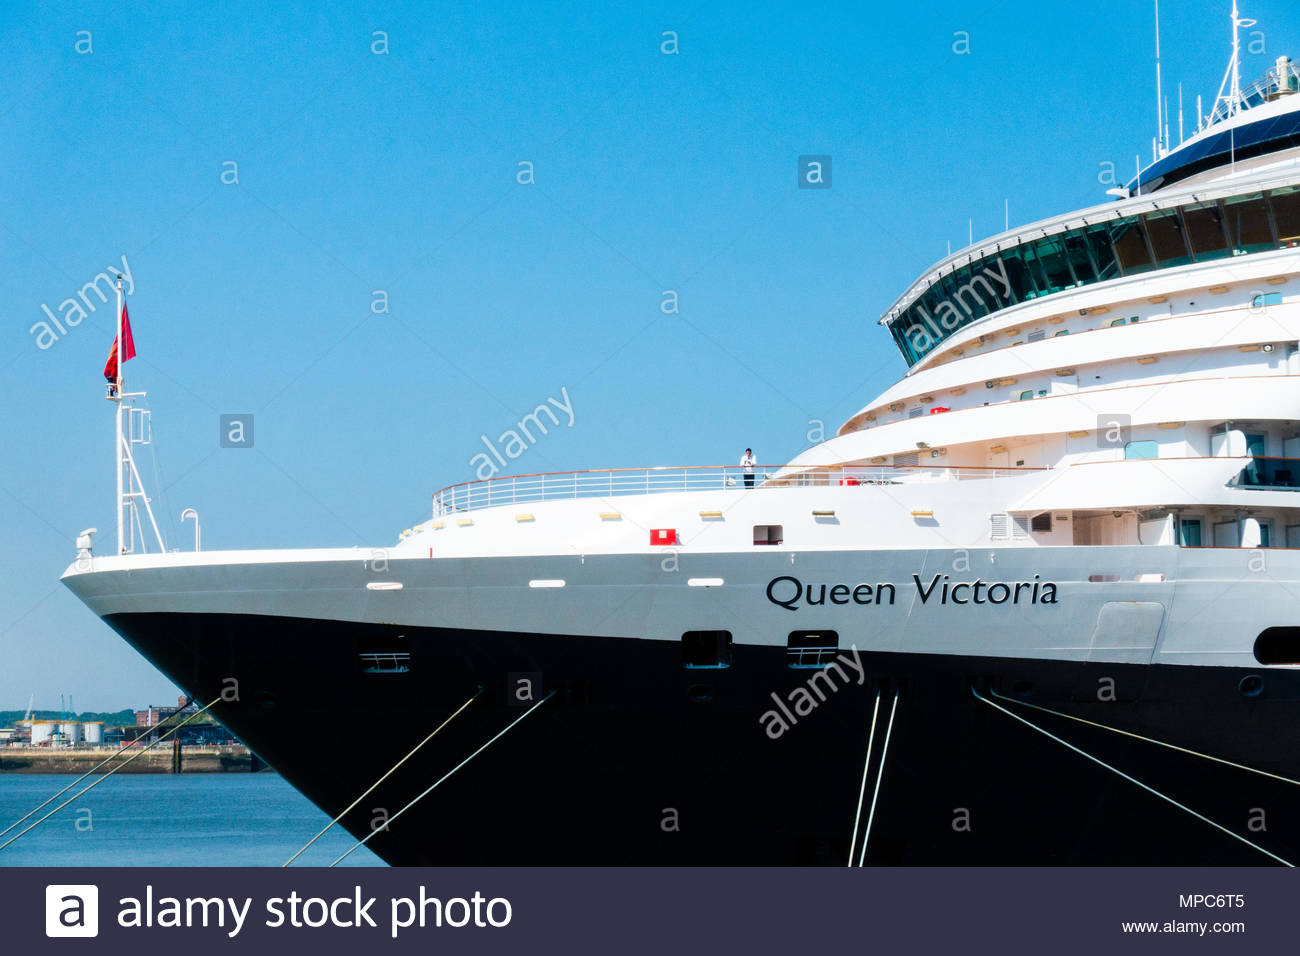 The Cunard Cruise Liner Queen Victoria berthed at the Pier Head in Liverpool, the large passenger ship berthed on a sunny day, on it's arrival in Liverpool, Merseyside, England on a very sunny day. Credit: Christopher Canty Photography/Alamy Live News Stock Photo